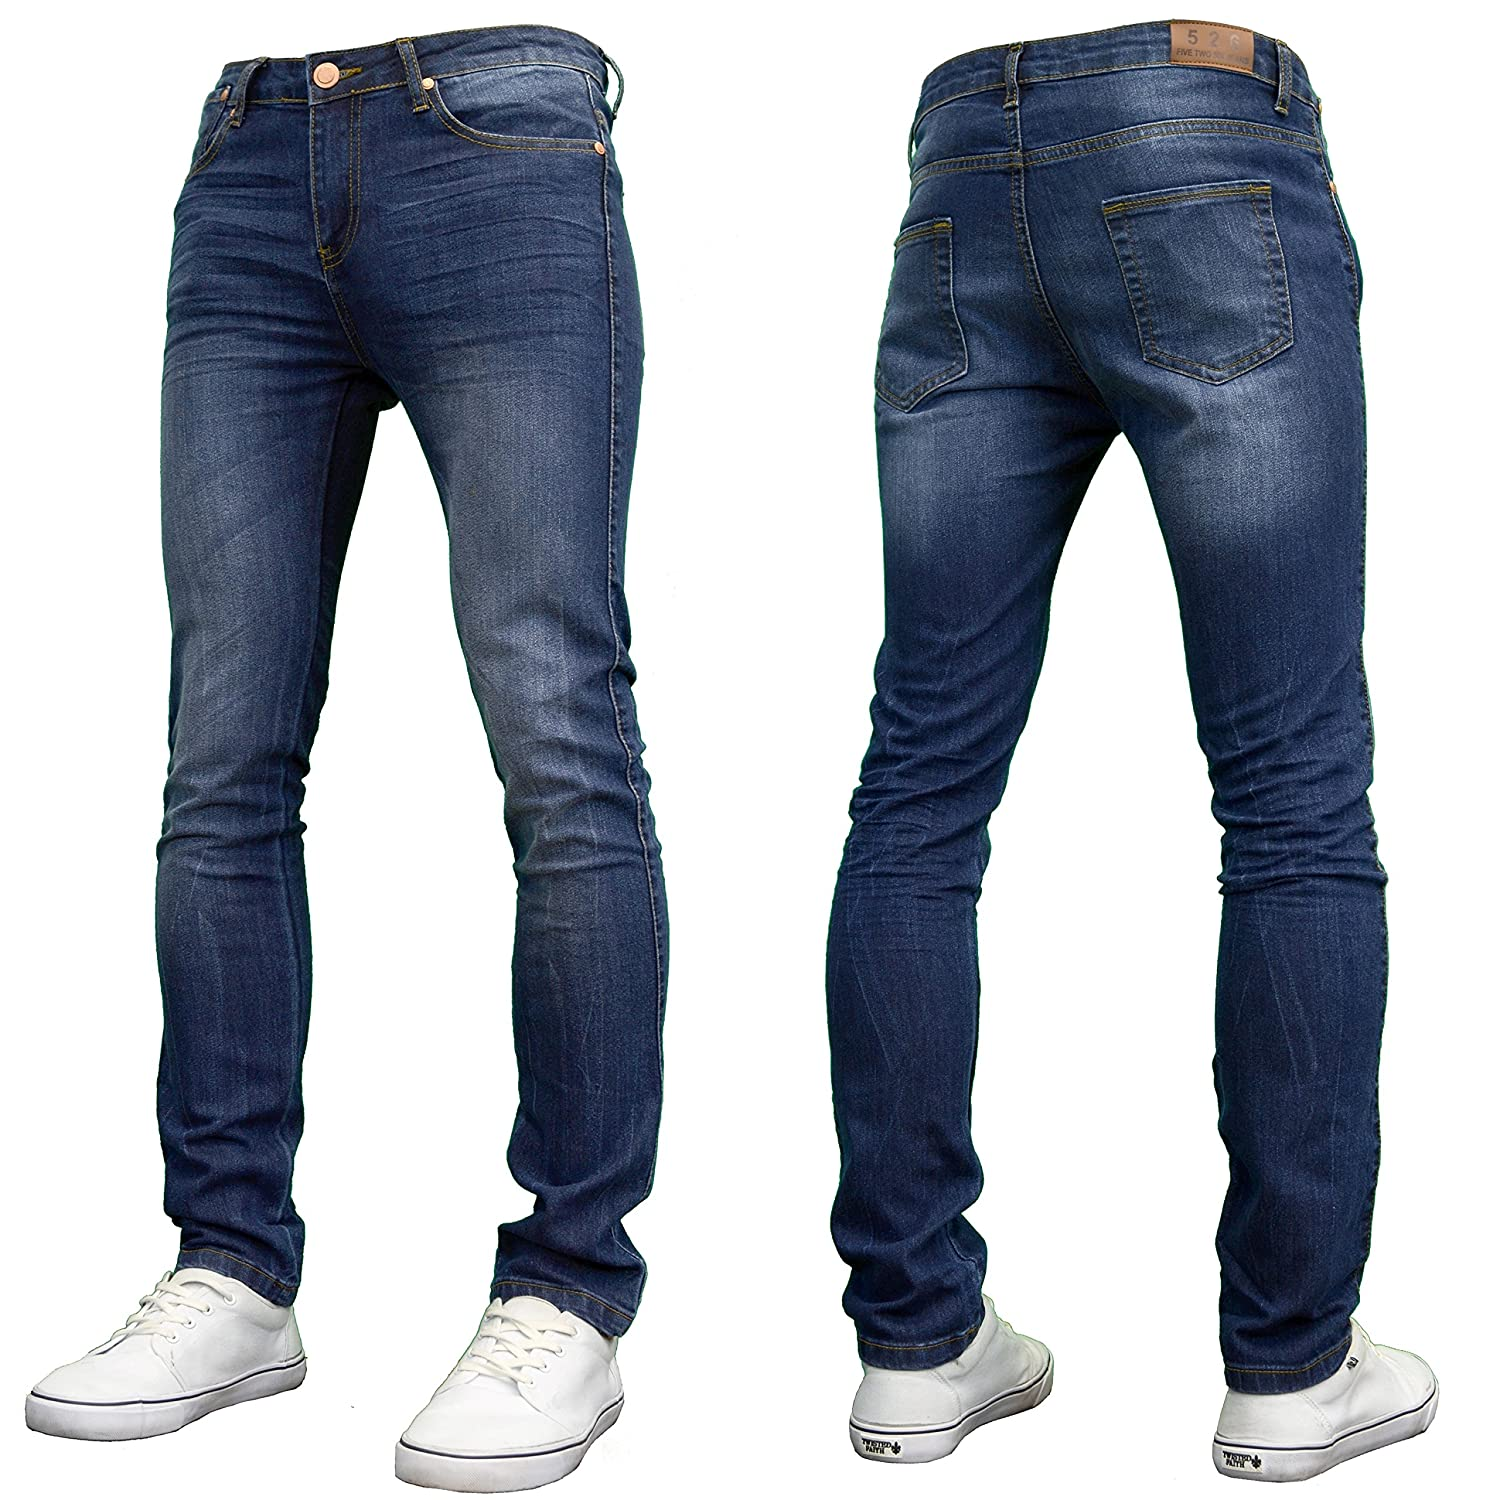 526Jeanswear Mens Kato Stretch Super Skinny Fit Jeans